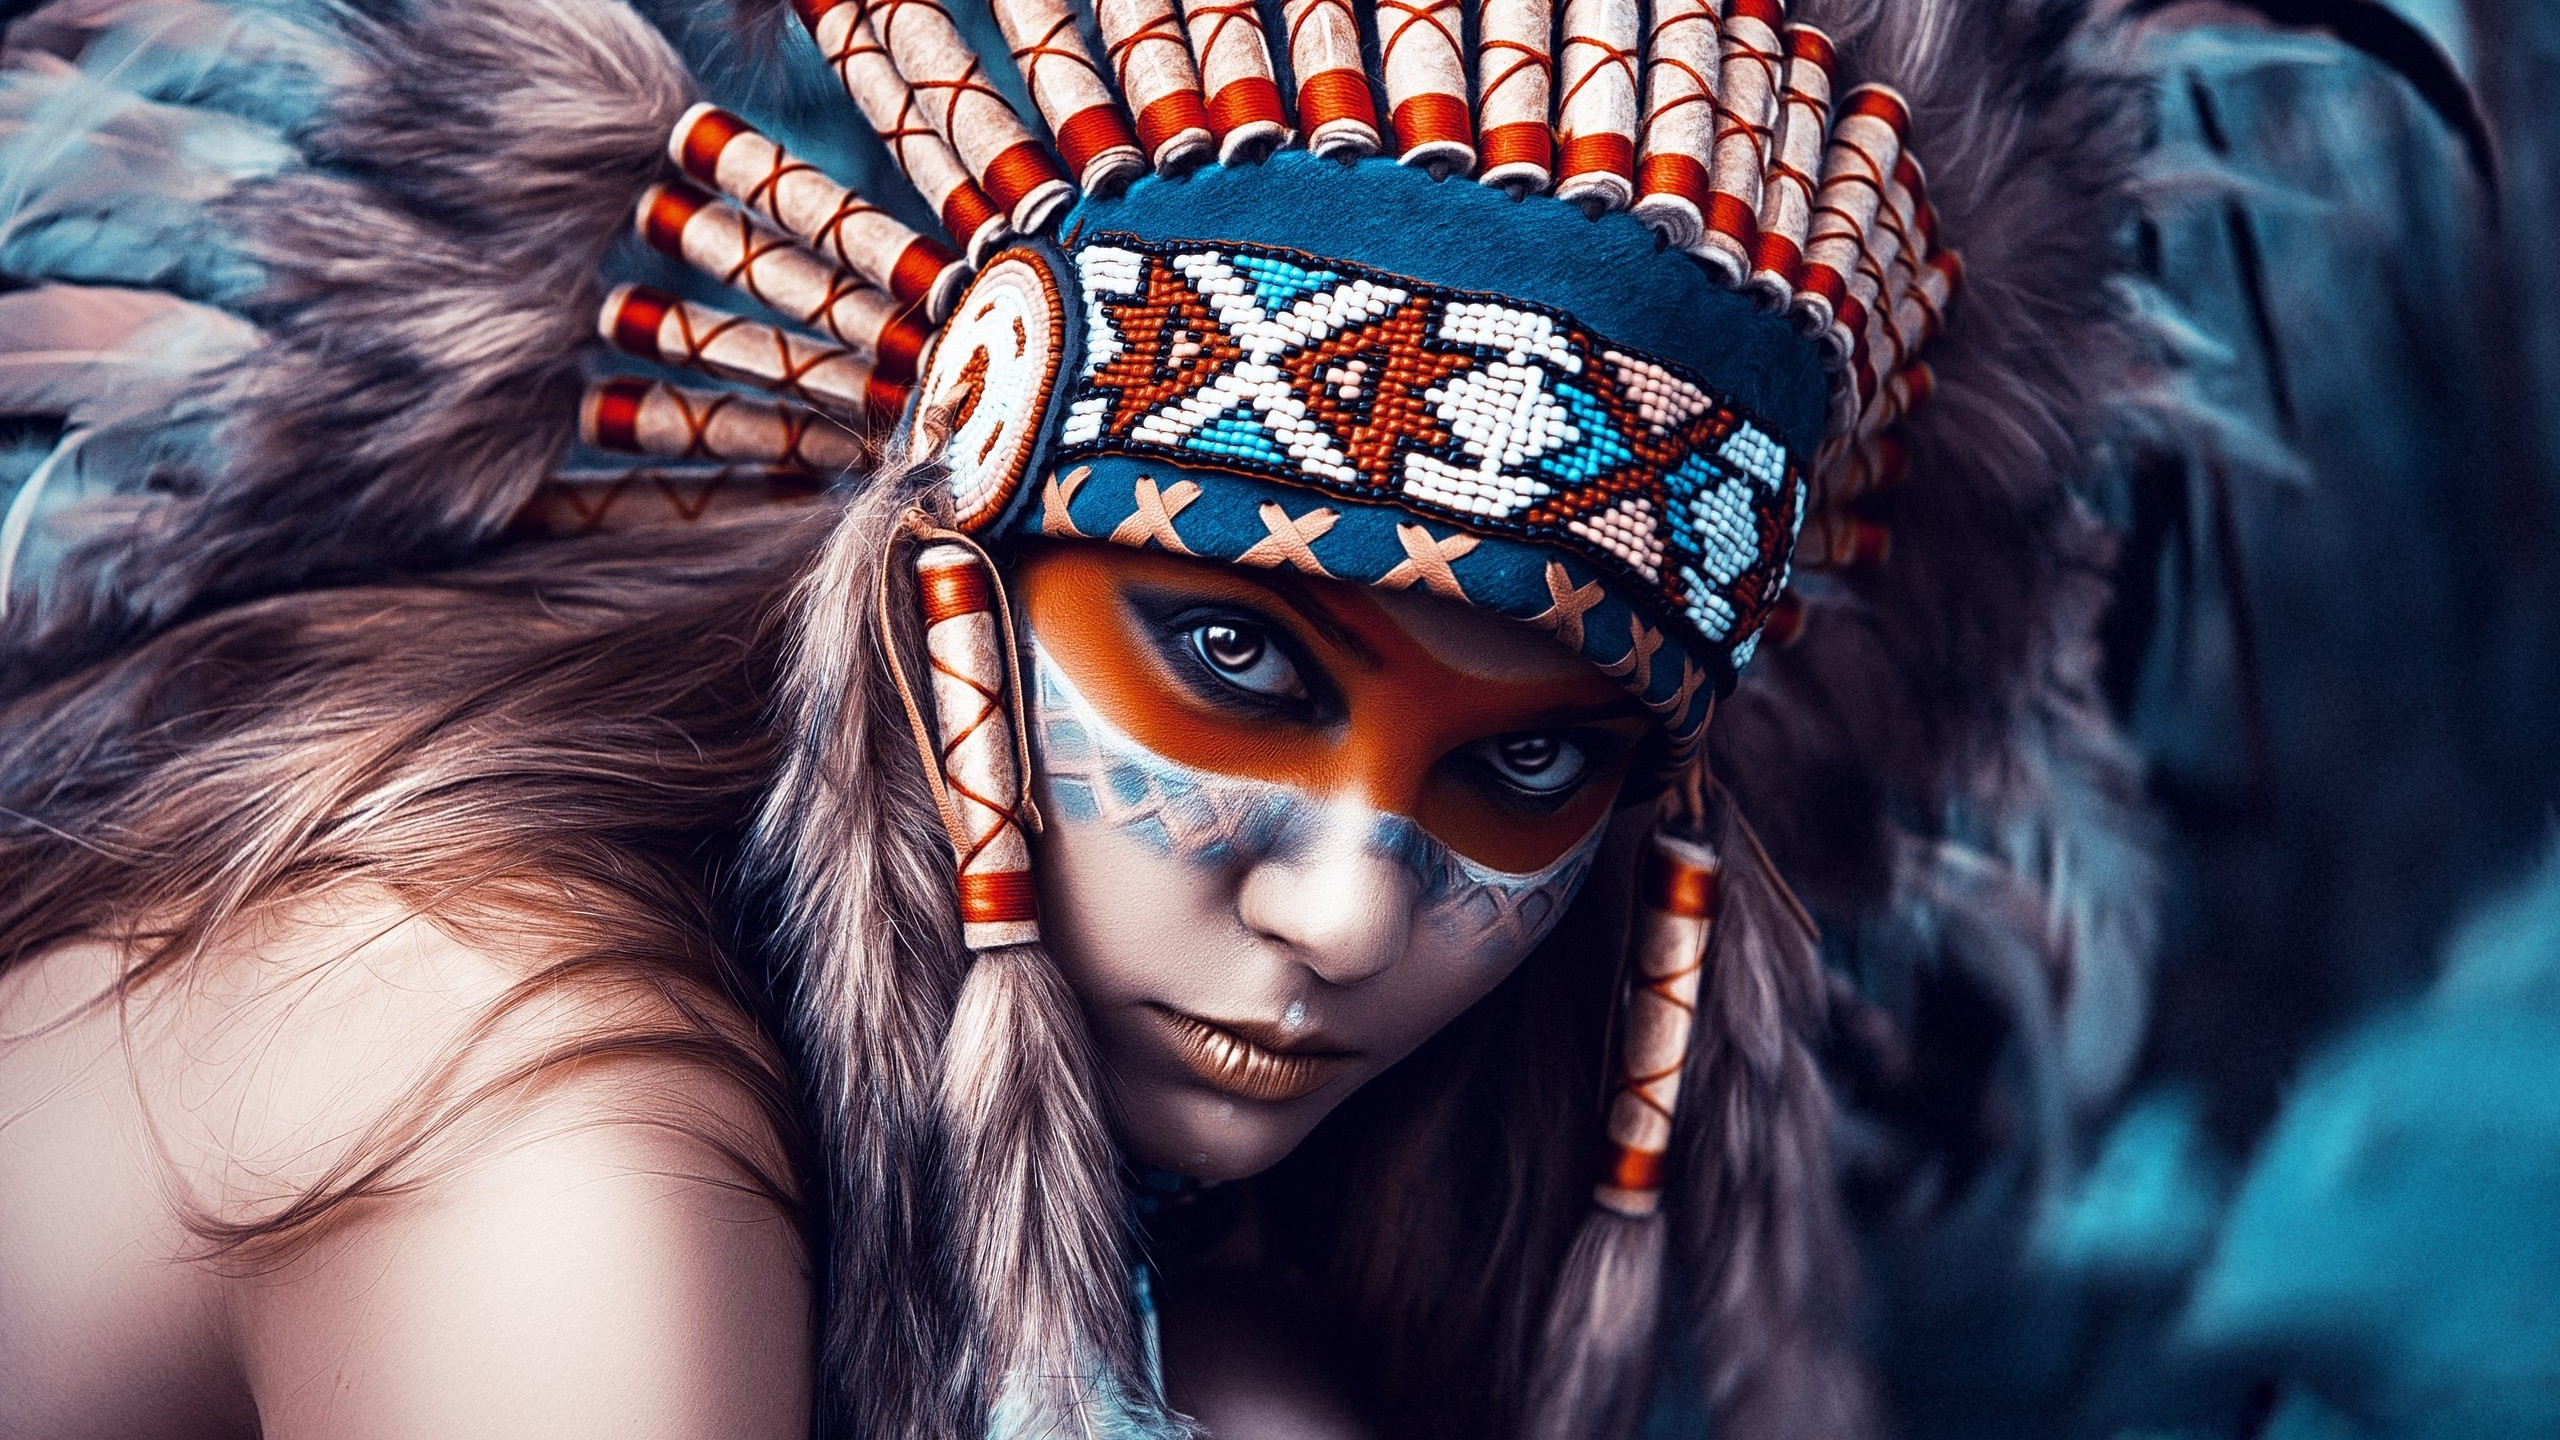 2560x1440 Photography / Native American Wallpaper